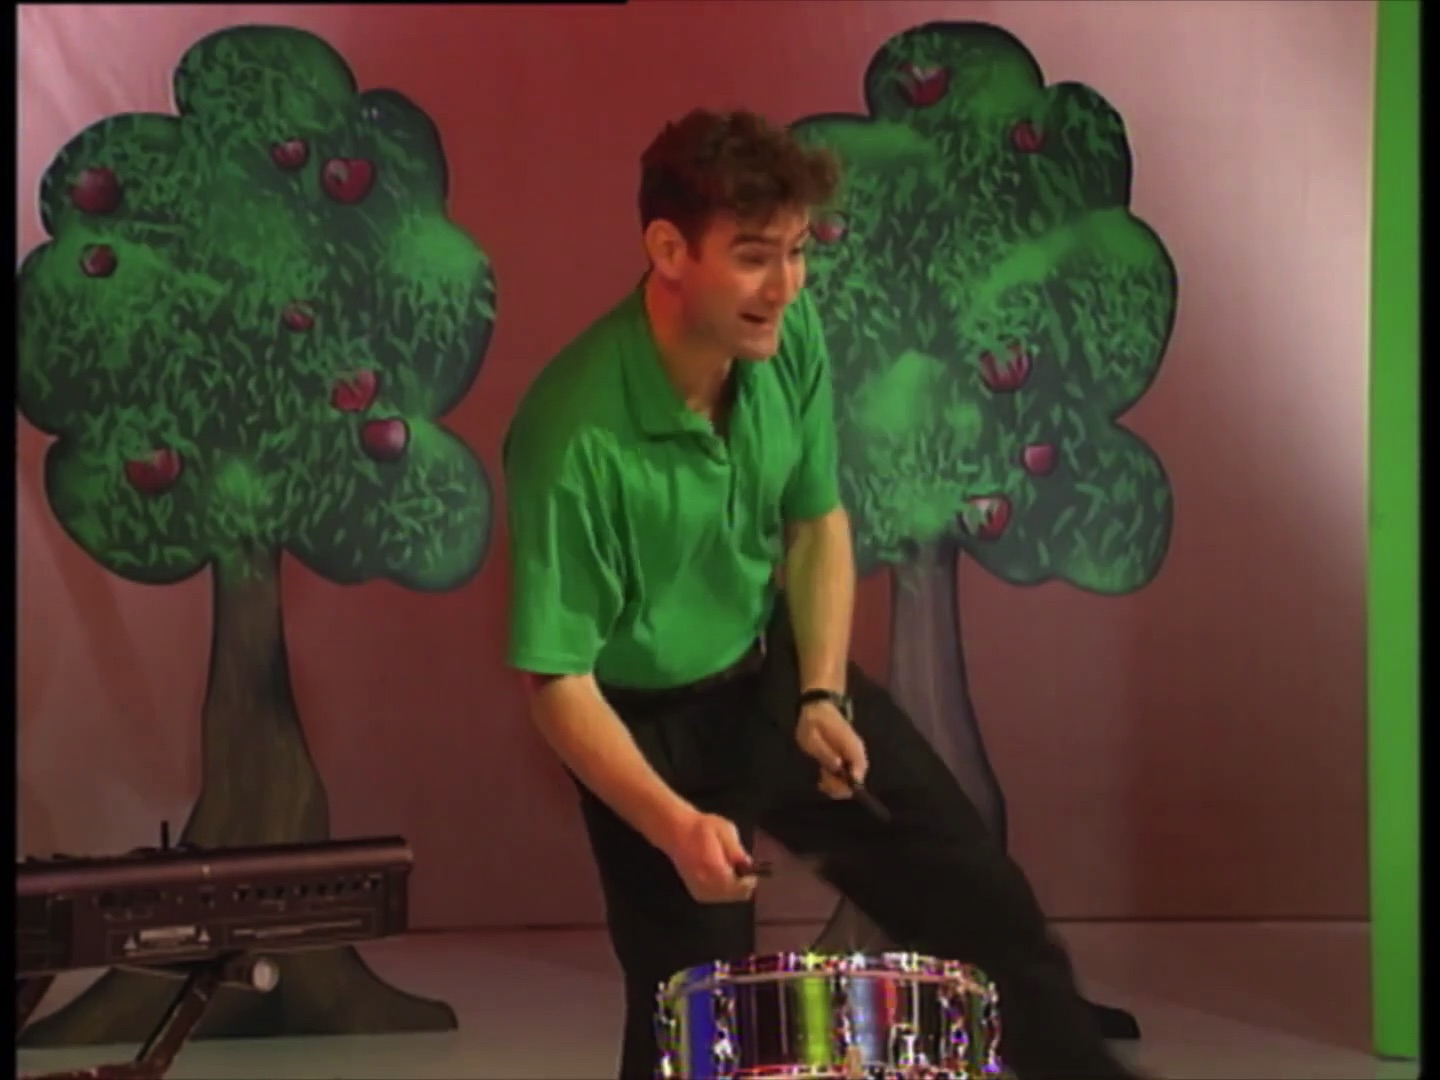 Anthony's Drum Playing Skit